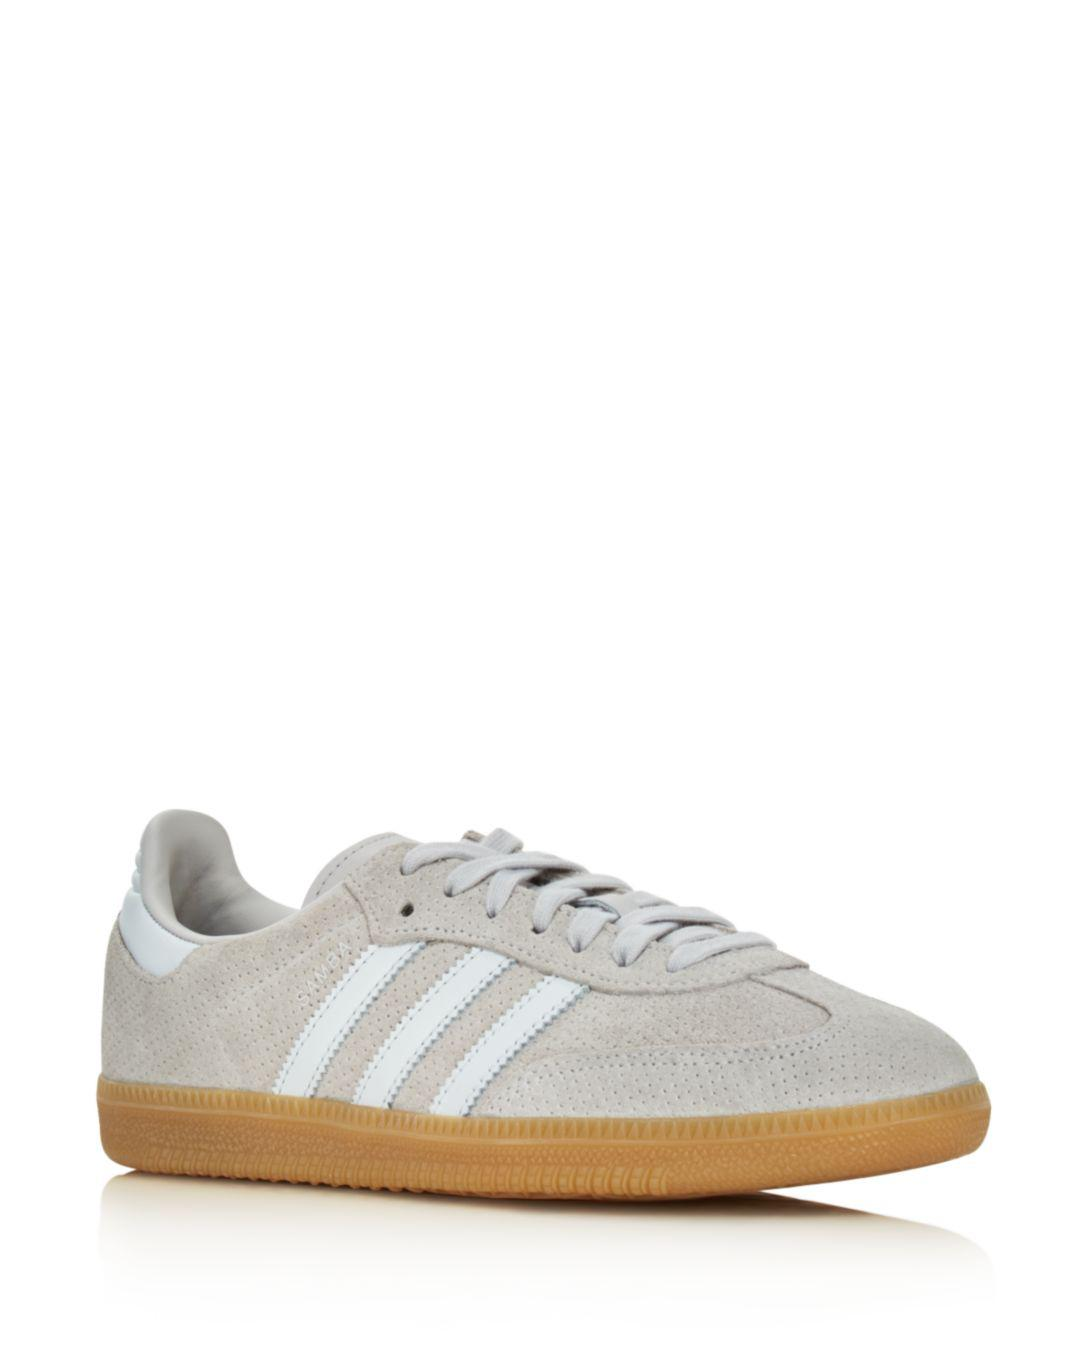 Lyst Mujeres Adidas Samba Suede Lace Up zapatos en gris